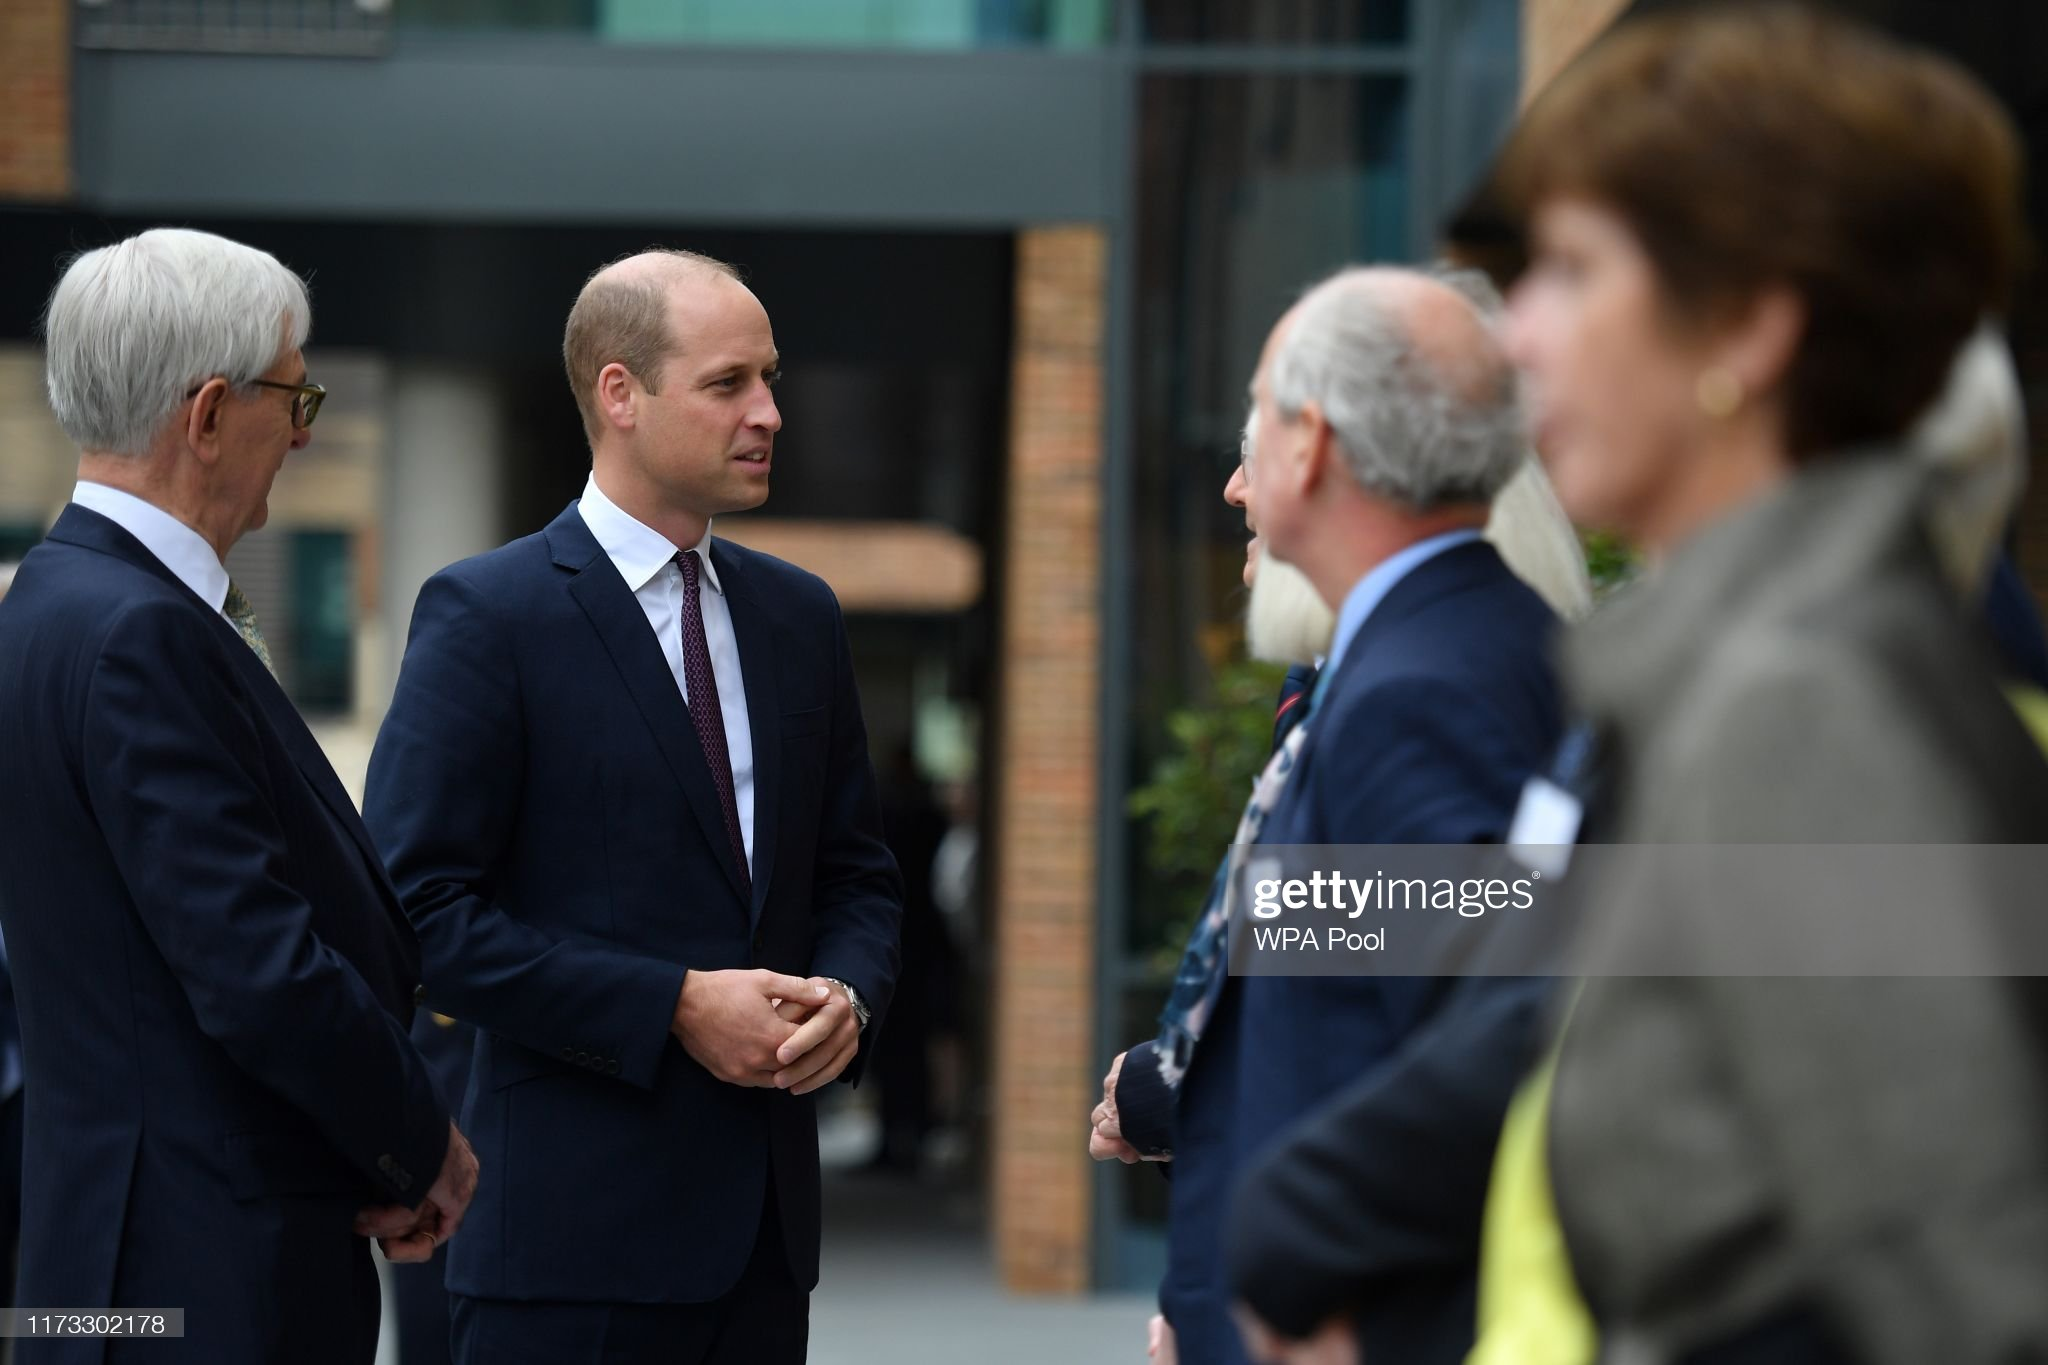 prince-william-duke-of-cambridge-accompanied-by-the-warden-of-keble-picture-id1173302178